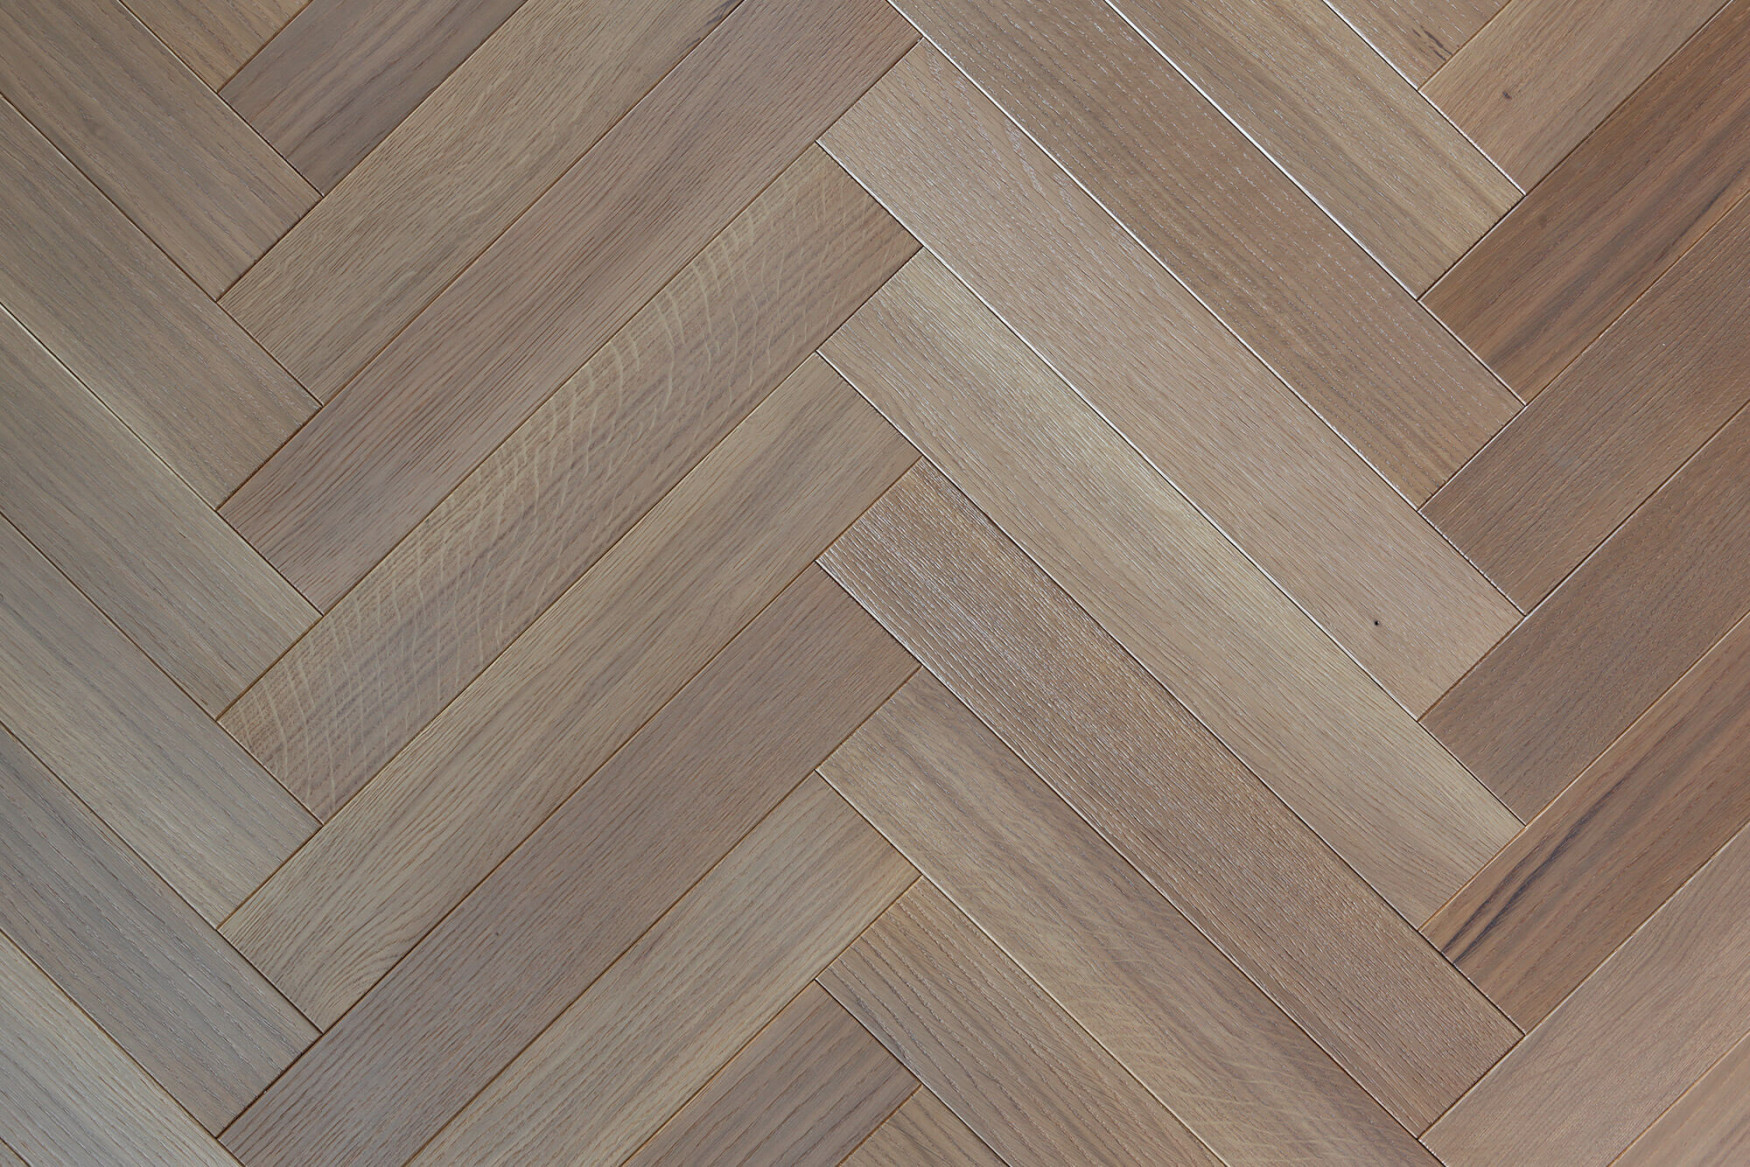 Element7-Parquet-BerluttiHerringbone_AJ_883_004